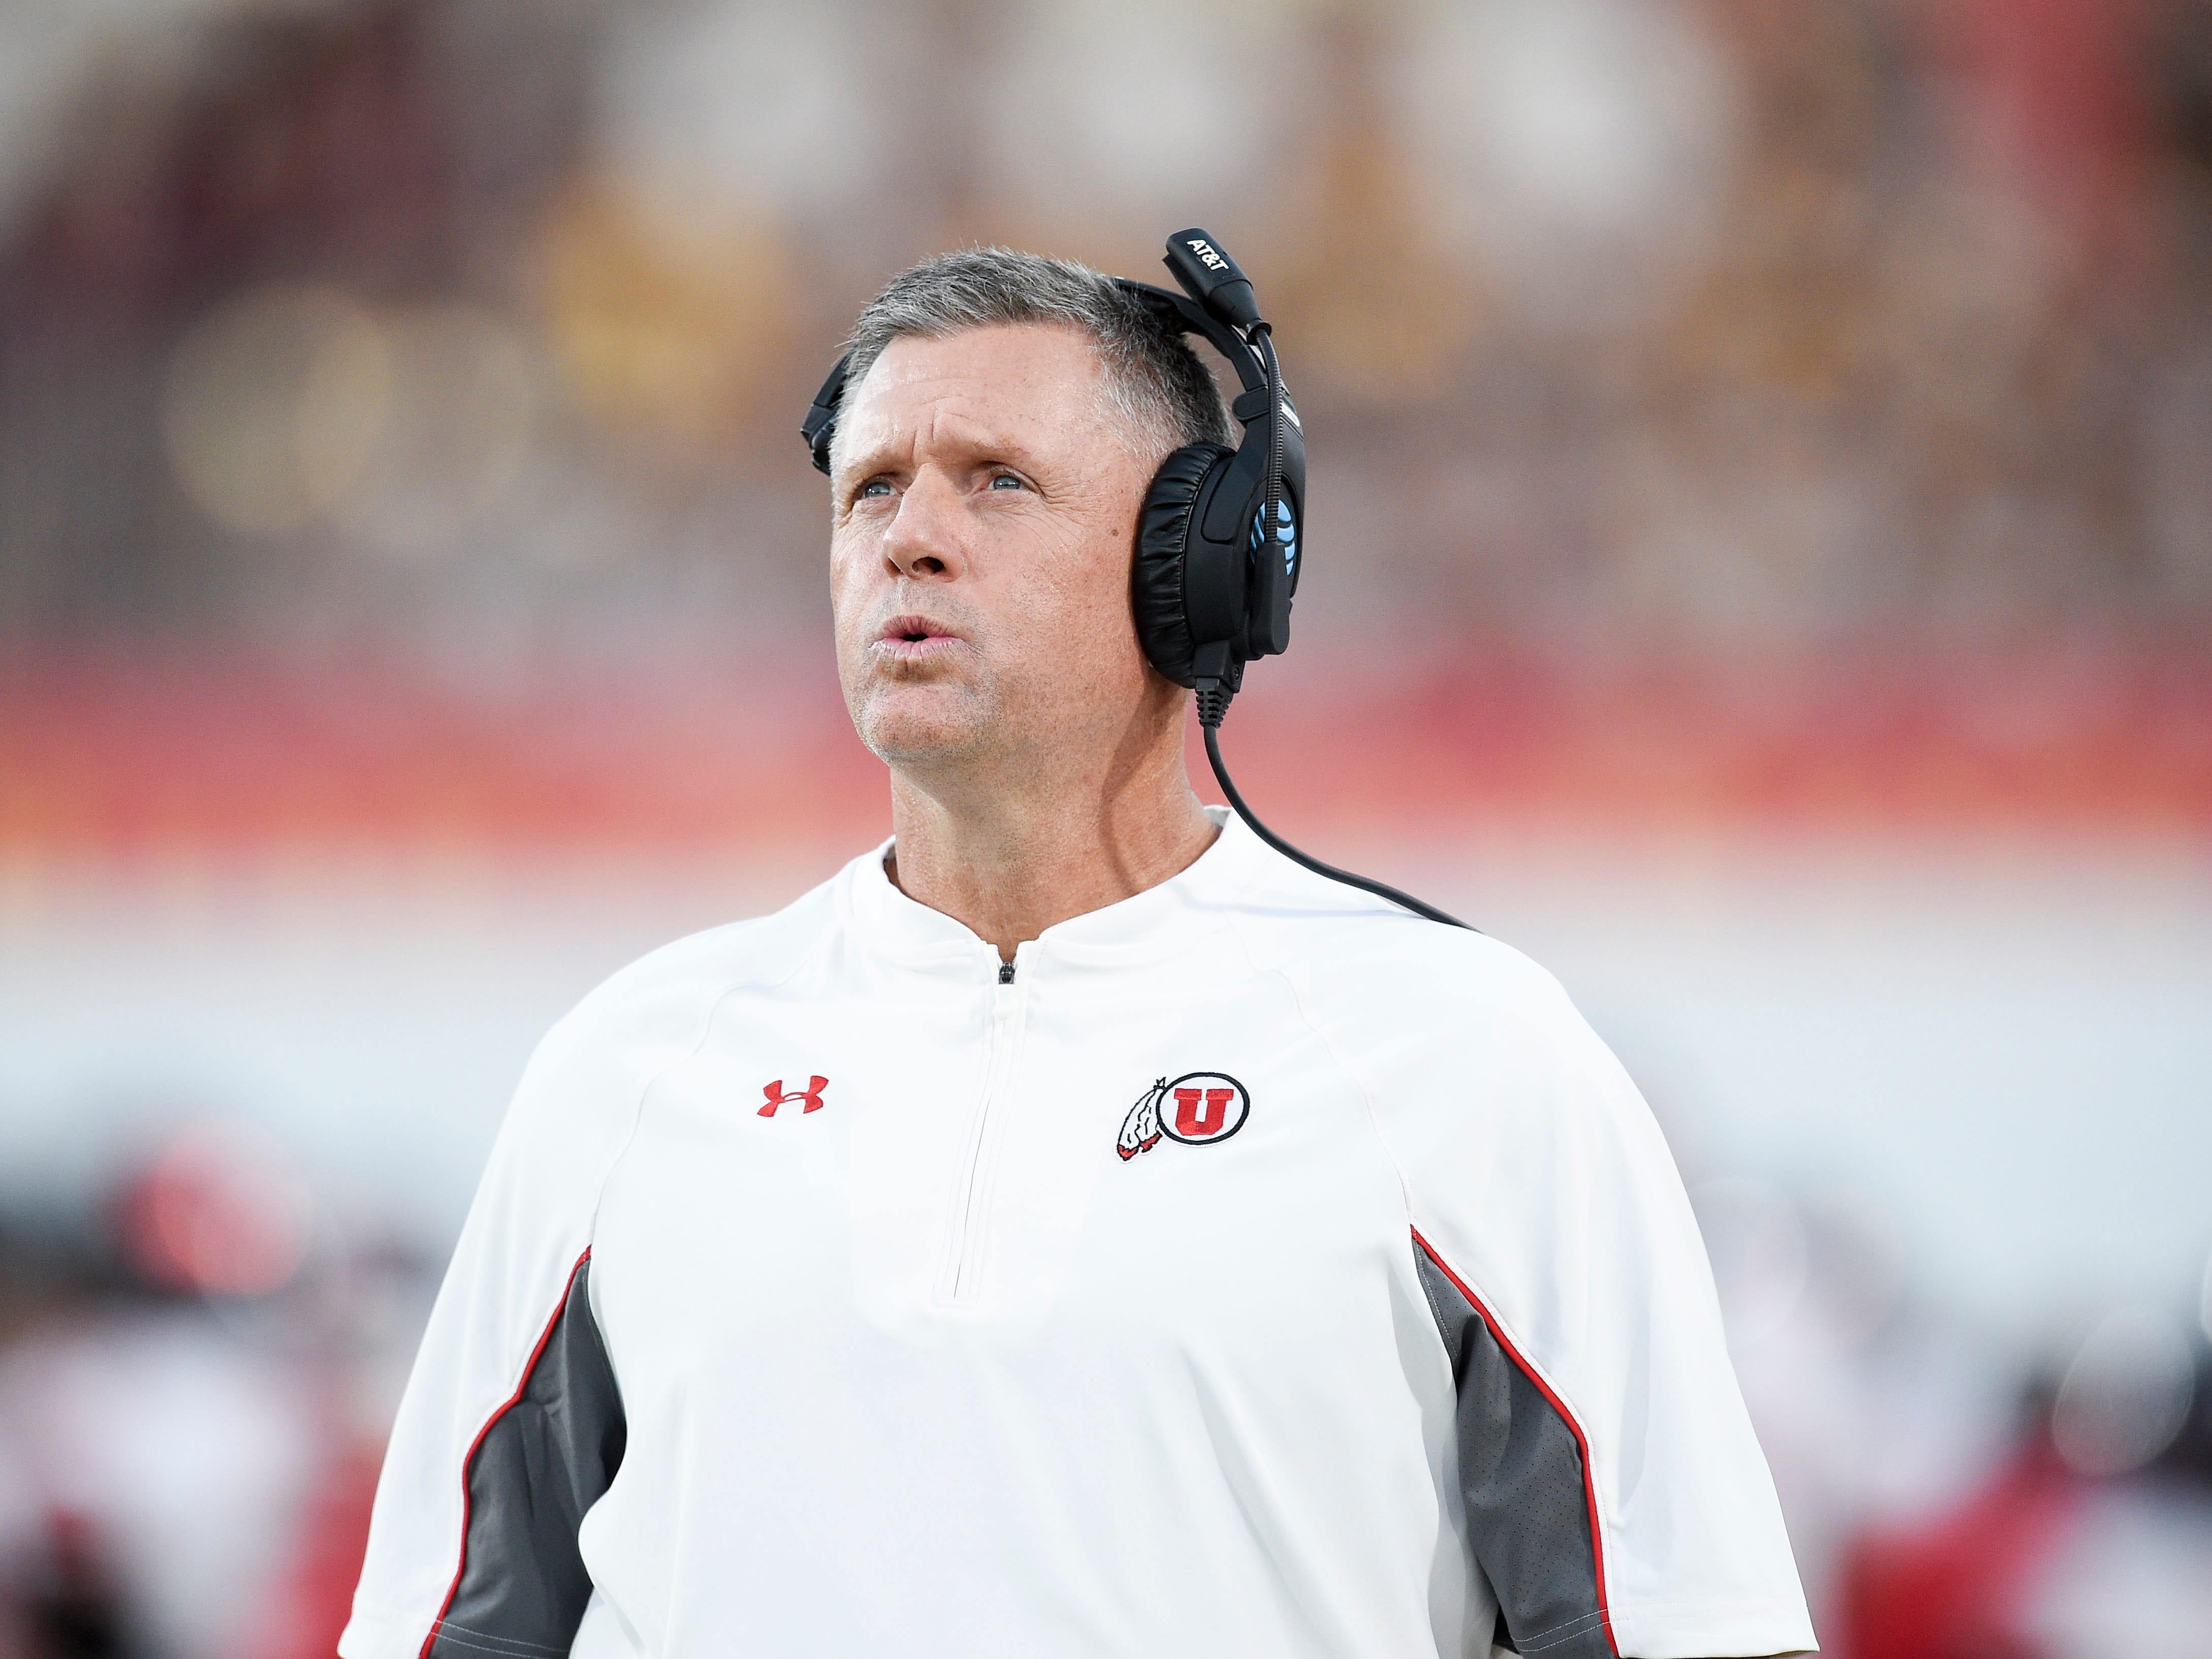 """This Oct. 14, 2017 photo shows Utah head coach Kyle Whittingham looking on from the sidelines during the first half of an NCAA college football game against the Southern California in Los Angeles. Whittingham joked with his sports information director near the end of his weekly news conference, Monday, Oct. 23, 2017 saying, """"Save me, Liz. Save me."""" Things have fallen apart for Utah and there's no clear explanation why. Whittingham has taken responsibility and said the coaches need to be better, but production has fallen off across the board. (AP Photo/Kelvin Kuo)"""